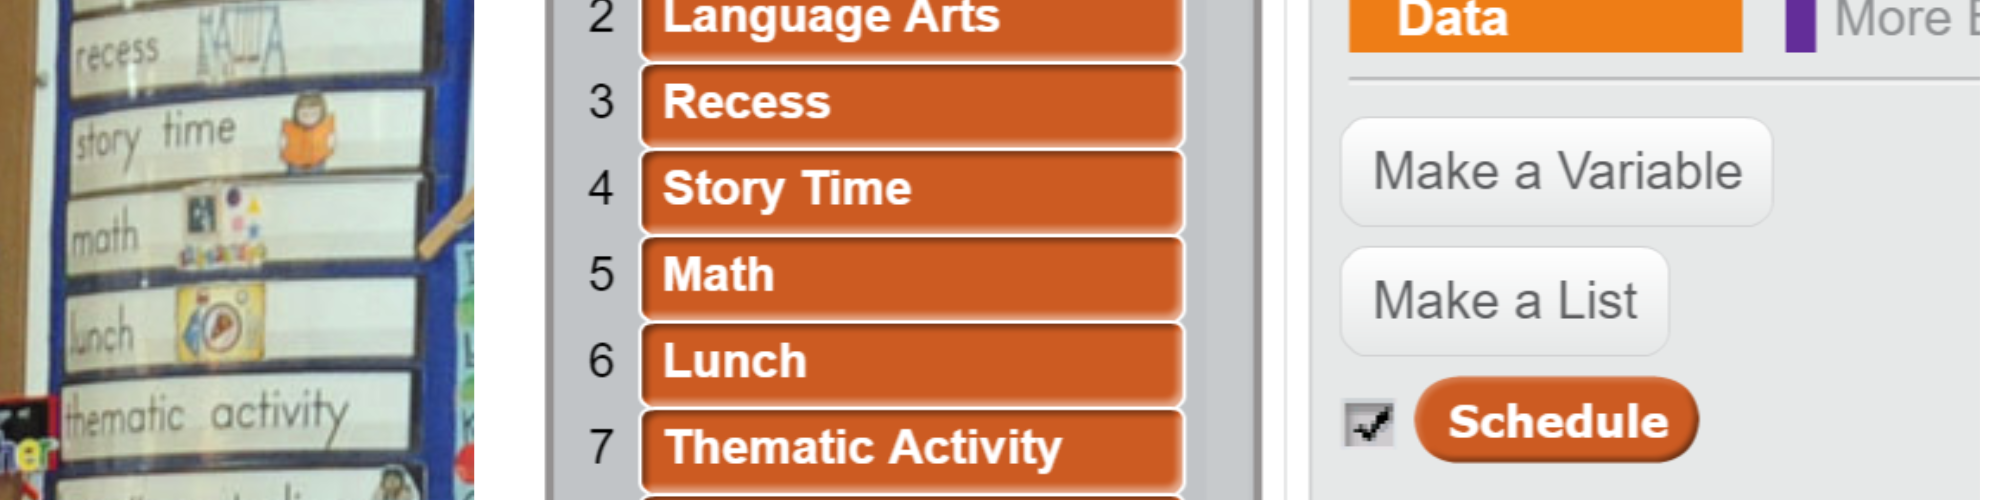 part of a classroom schedule and its representation in Scratch